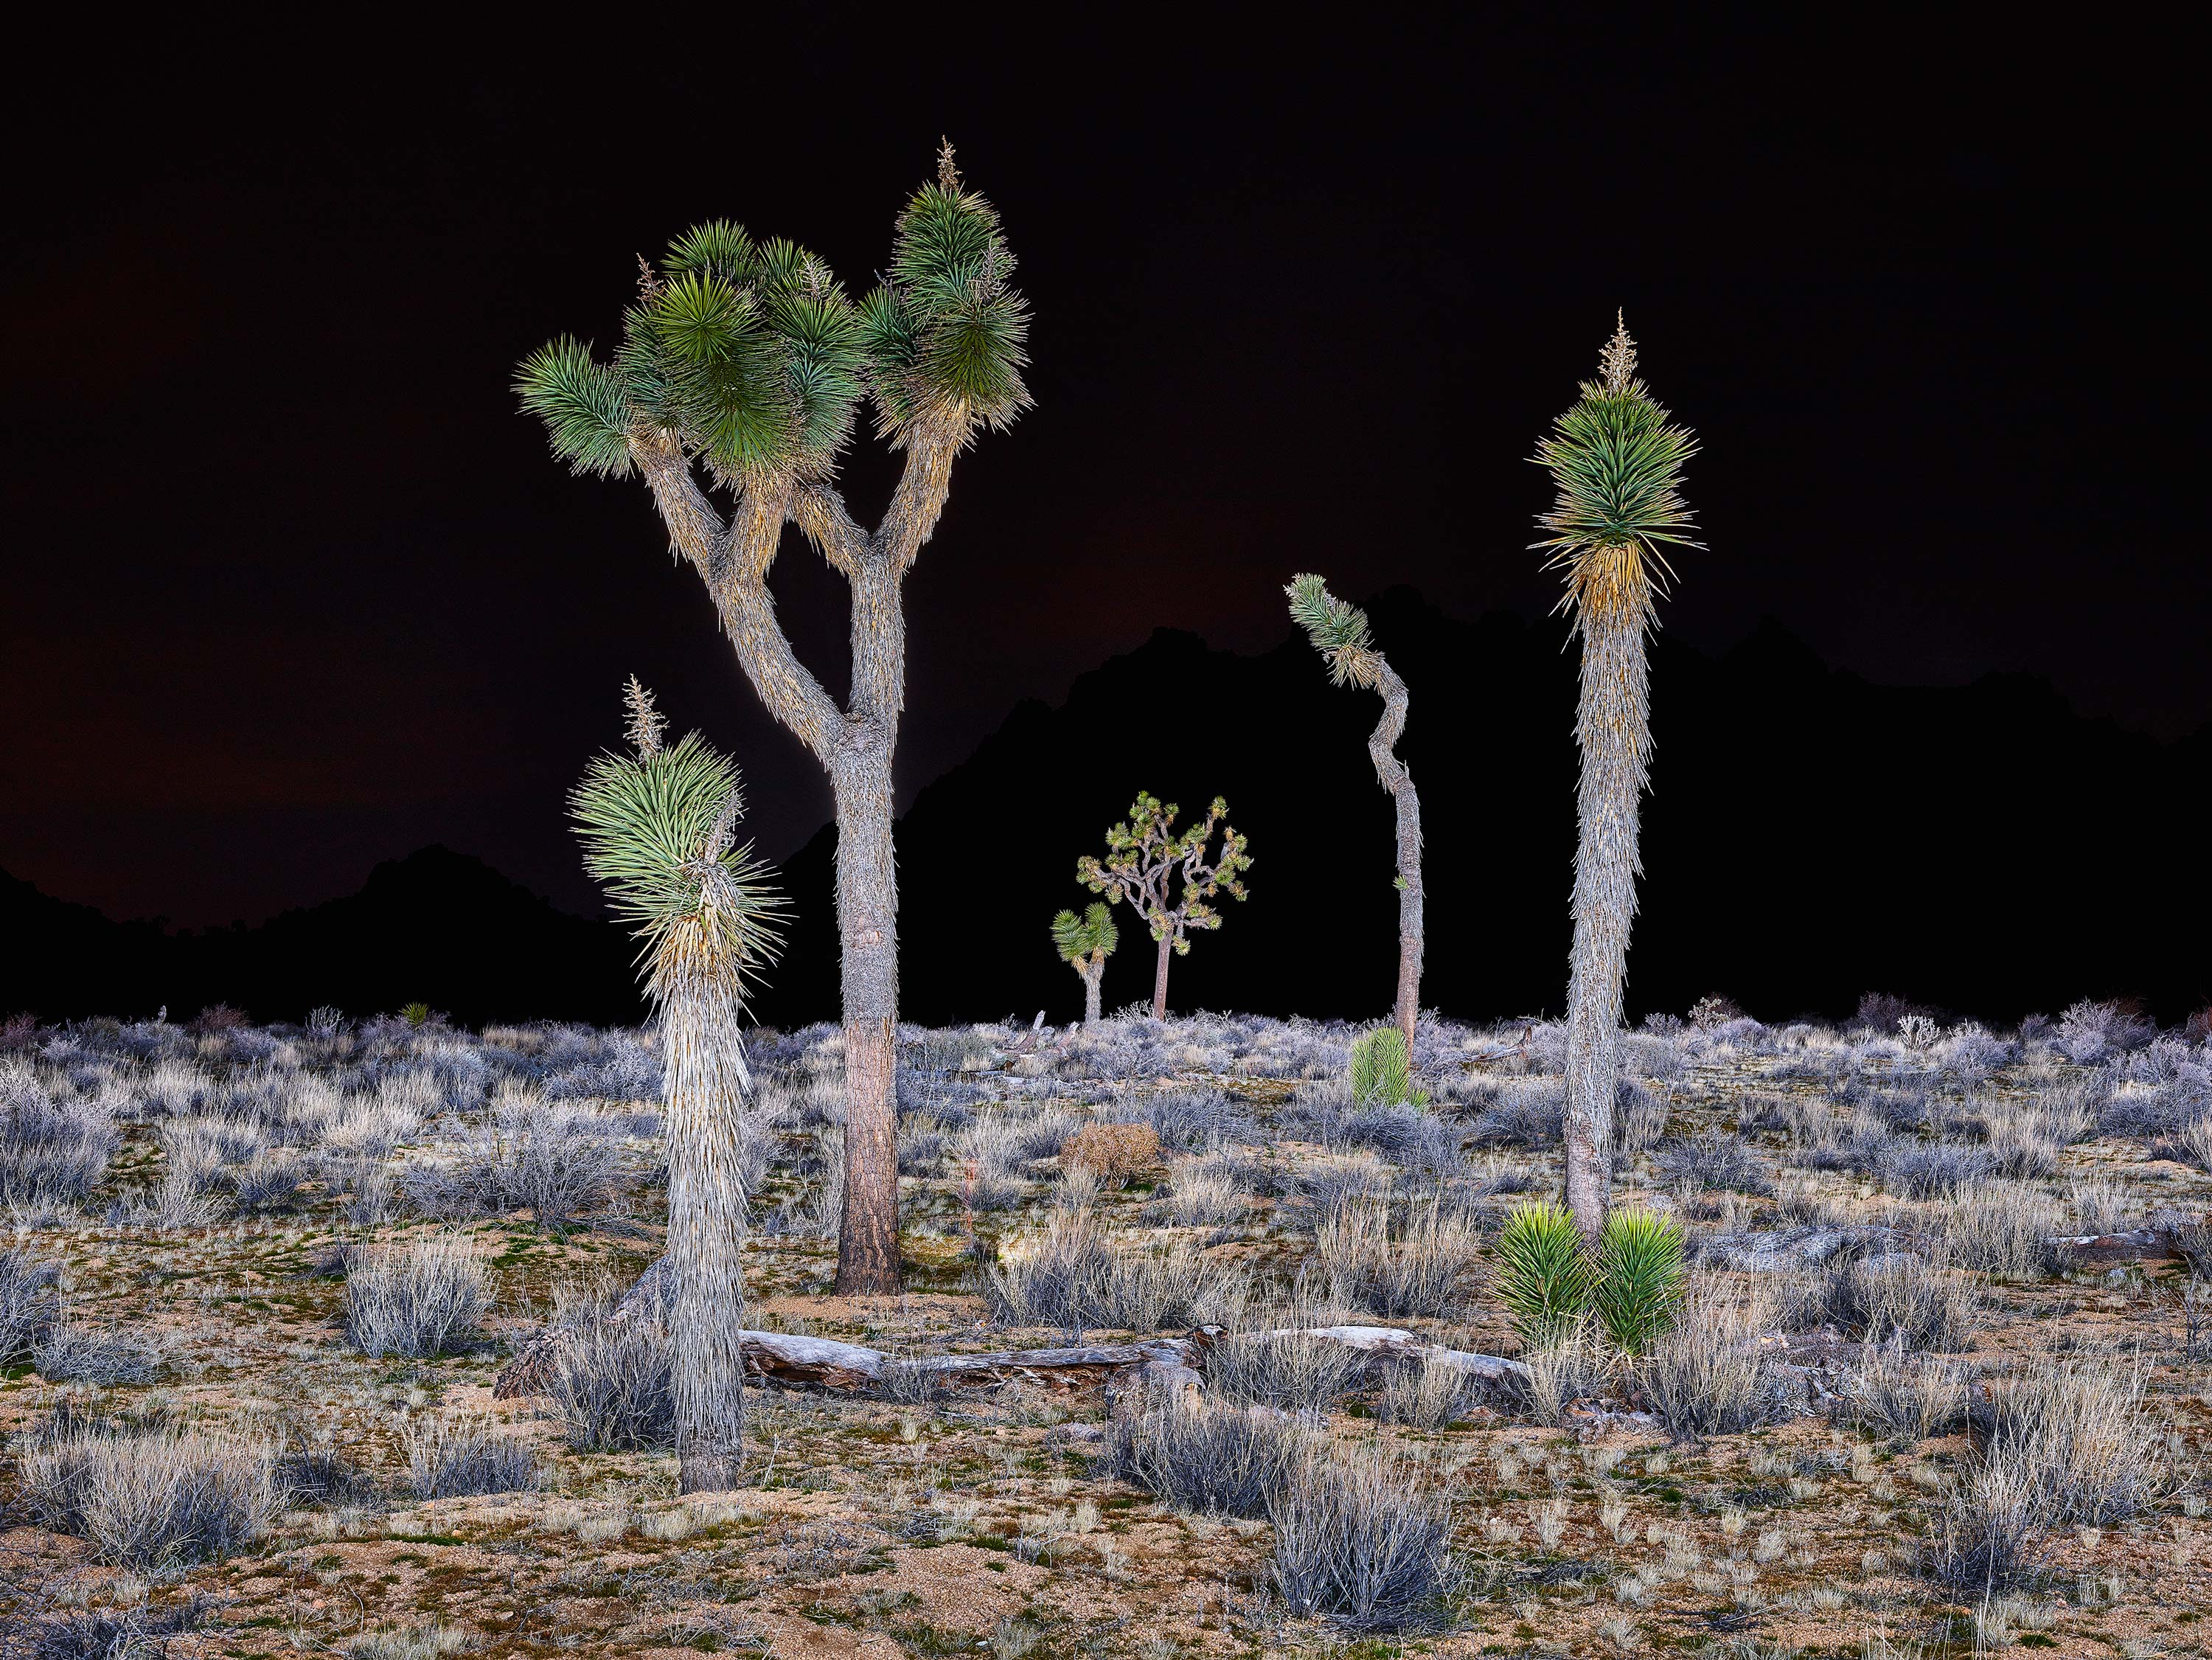 Joshua Tree's, Study 3, Joshua Tree National Park, California, USA, 2016